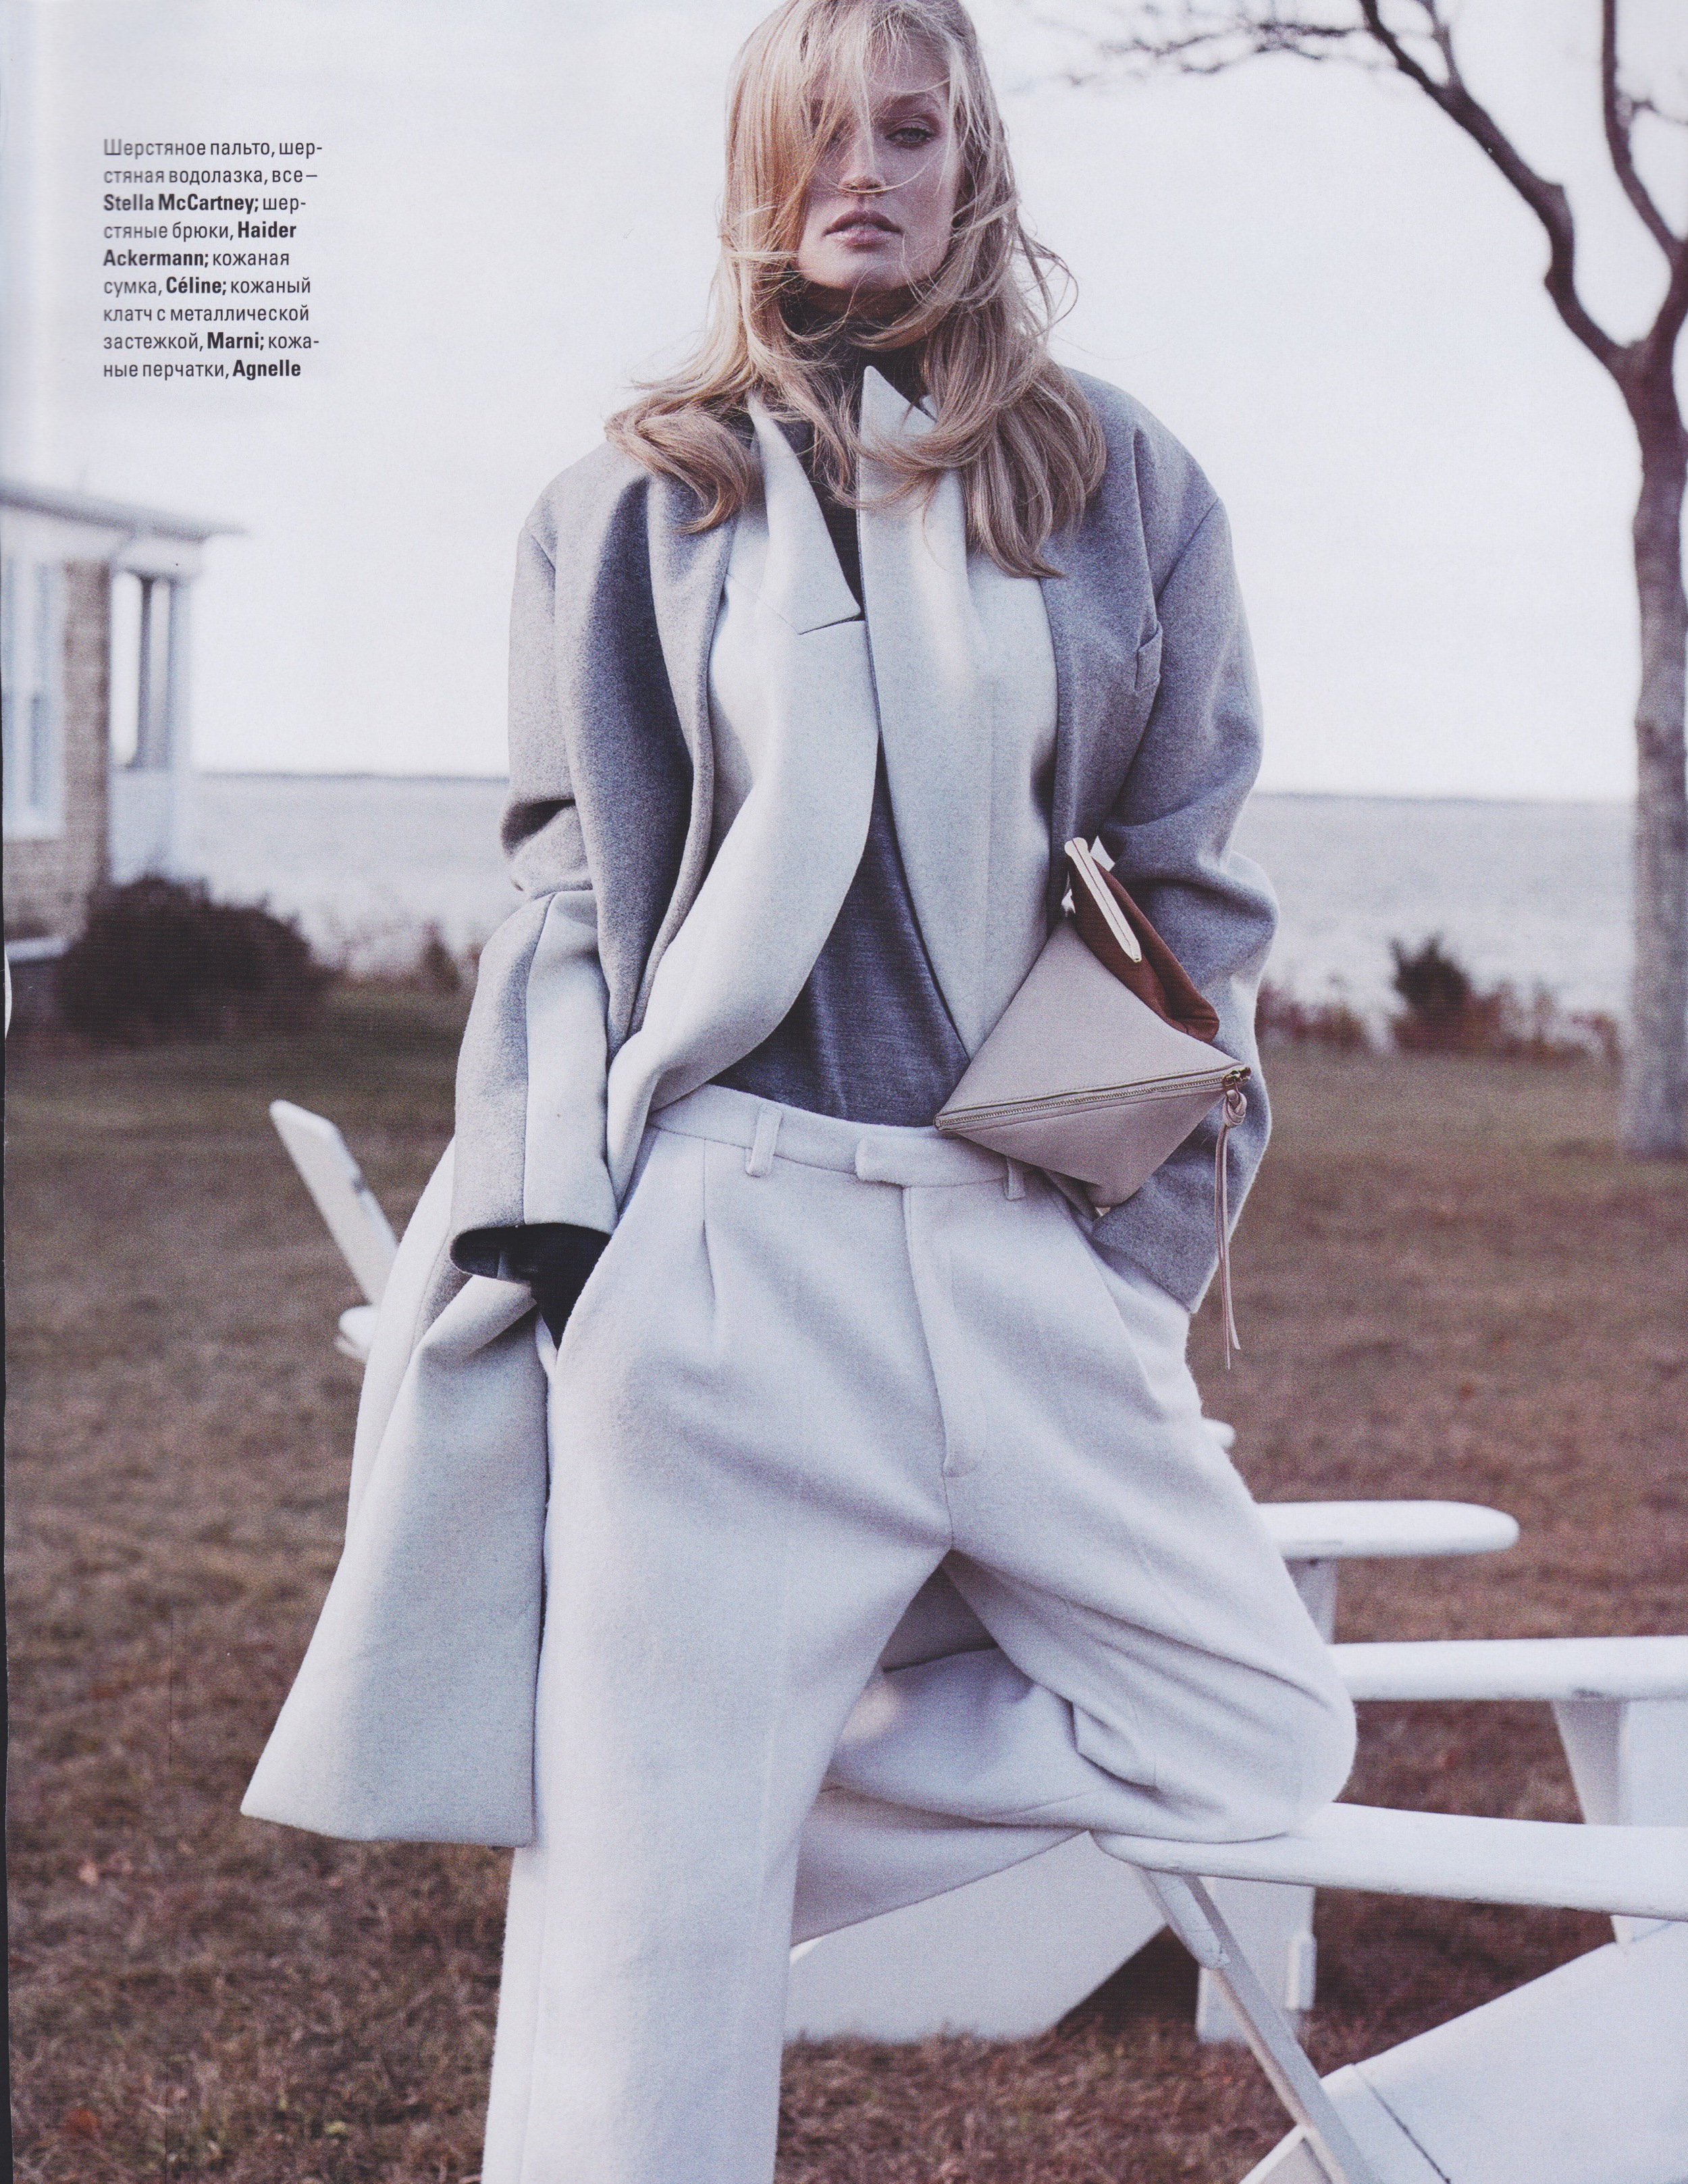 toni garrn photo shoot for vogue ukraine by benny horne and county fair productions 6